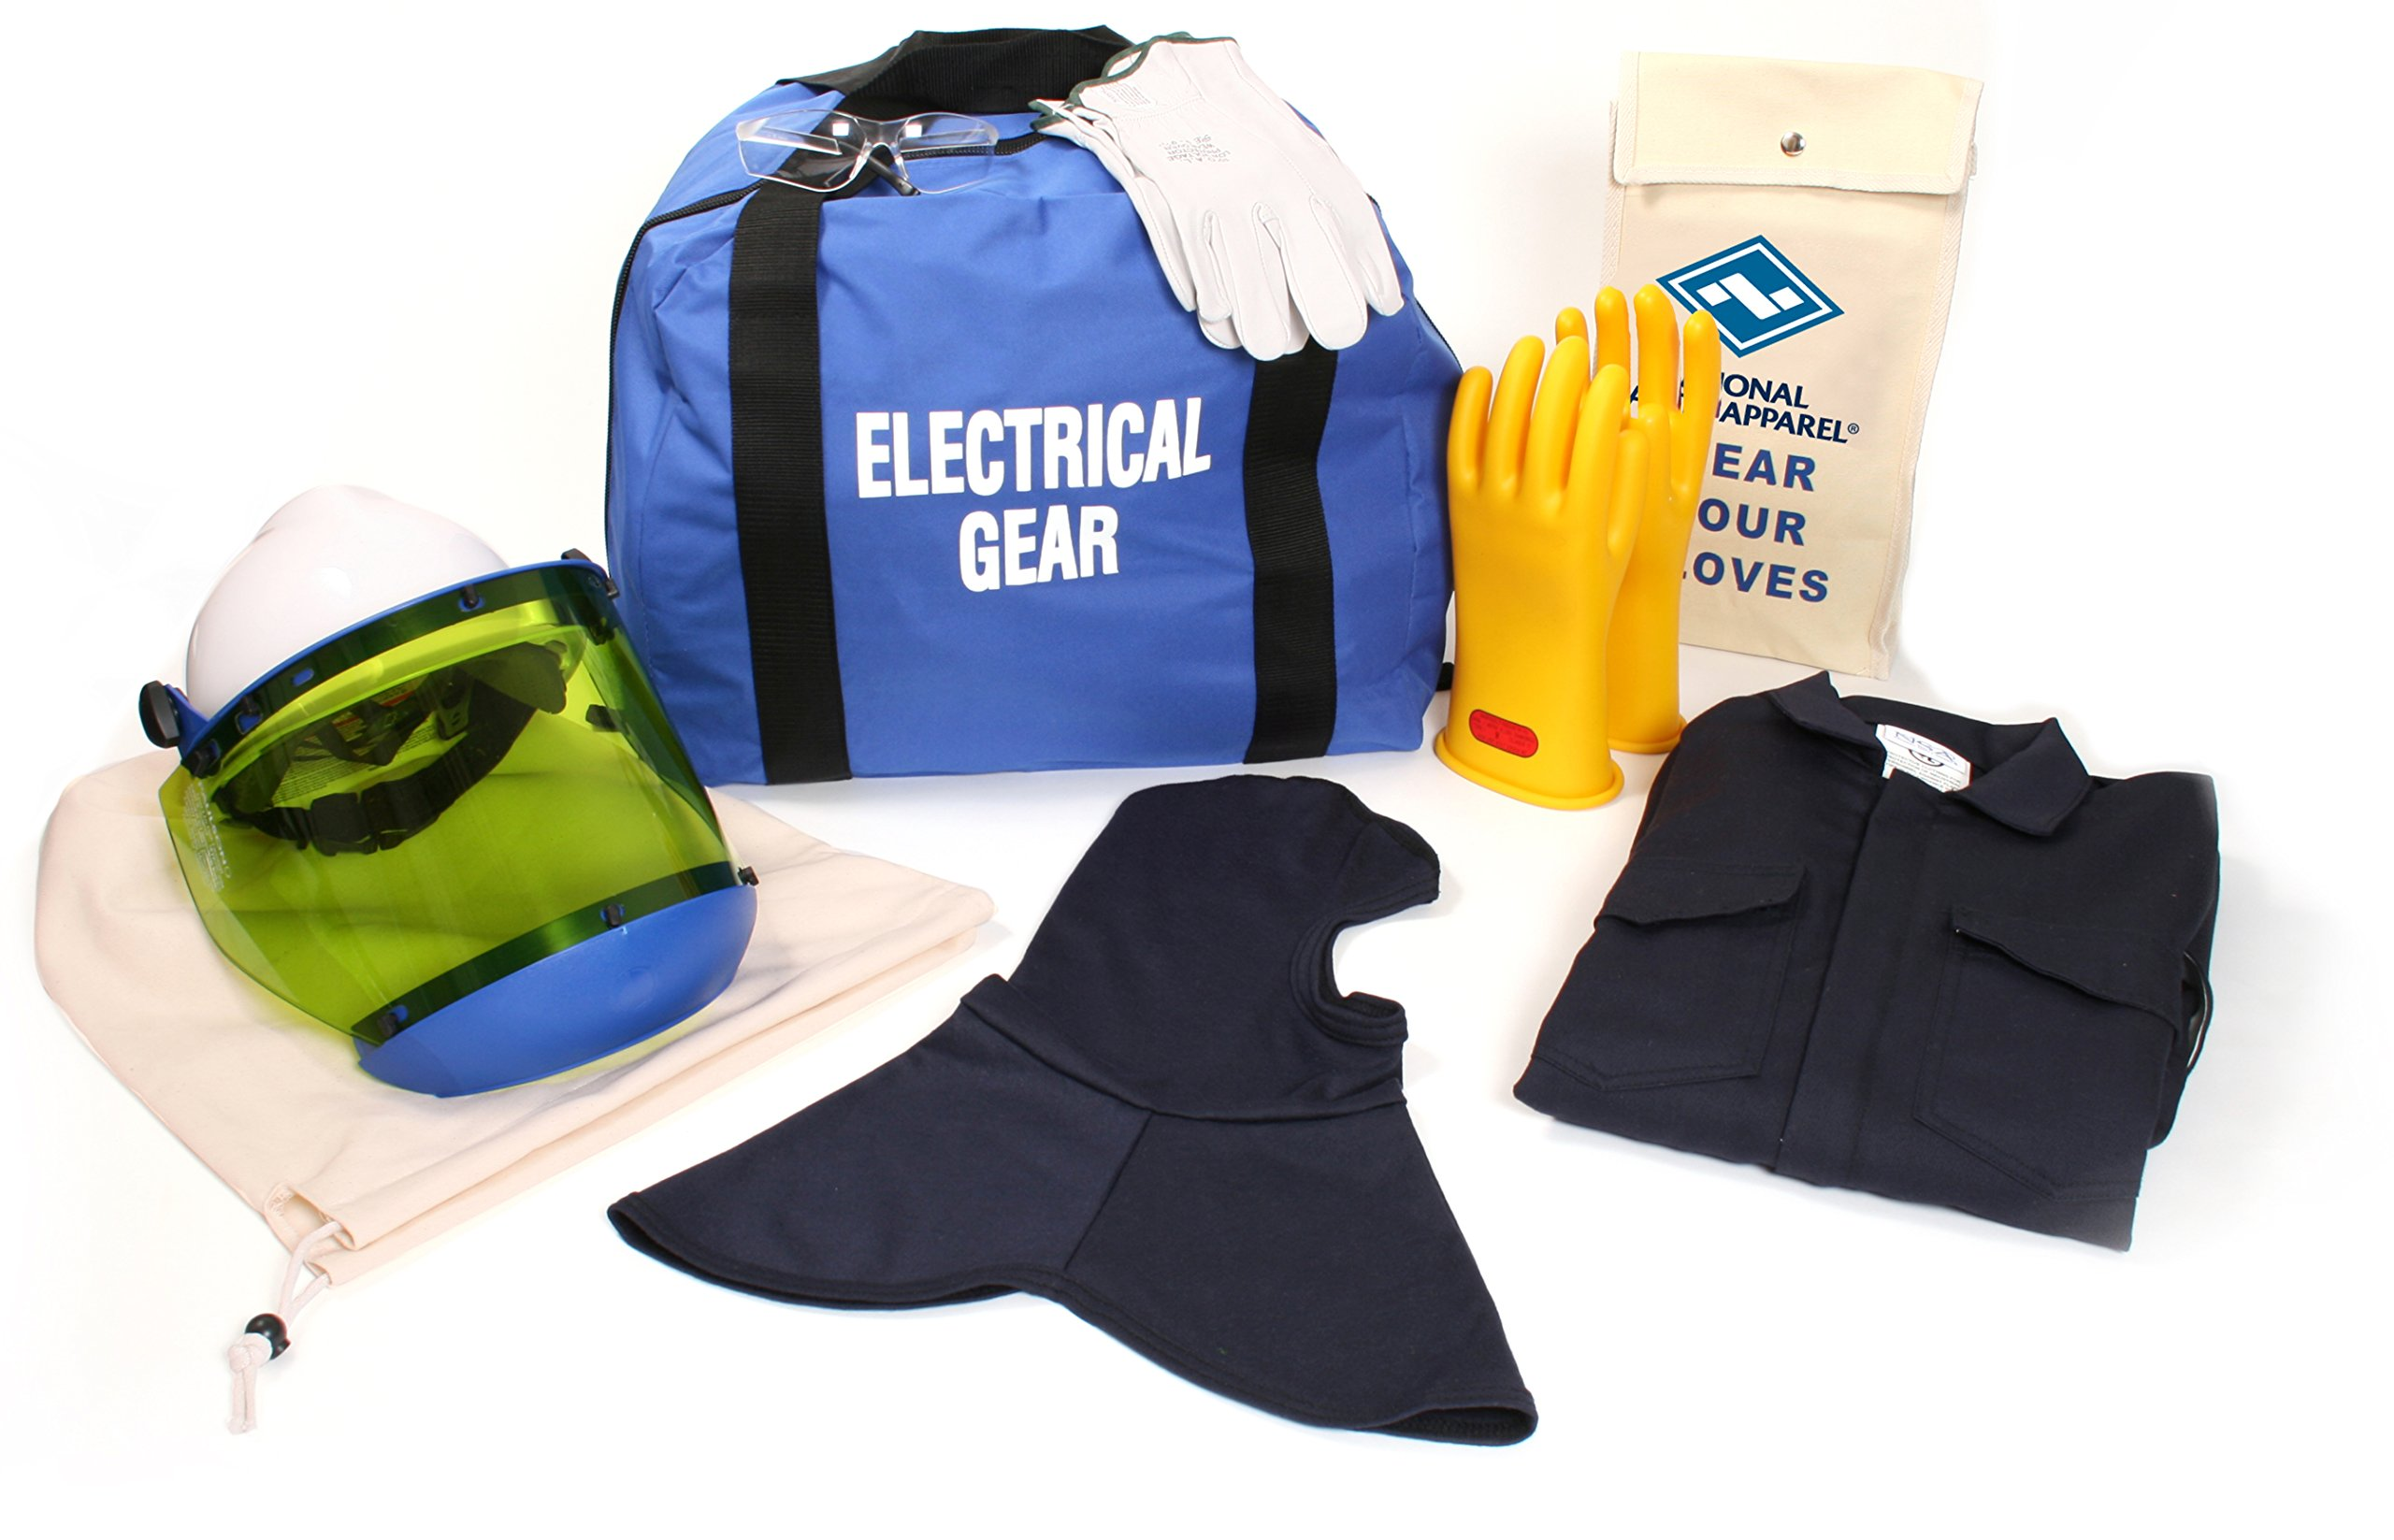 National Safety Apparel KIT2CV08BSM10 ArcGuard UltraSoft Arc Flash Kit with Coverall and Balaclava, 8 Calorie, Small, Size 10, Navy